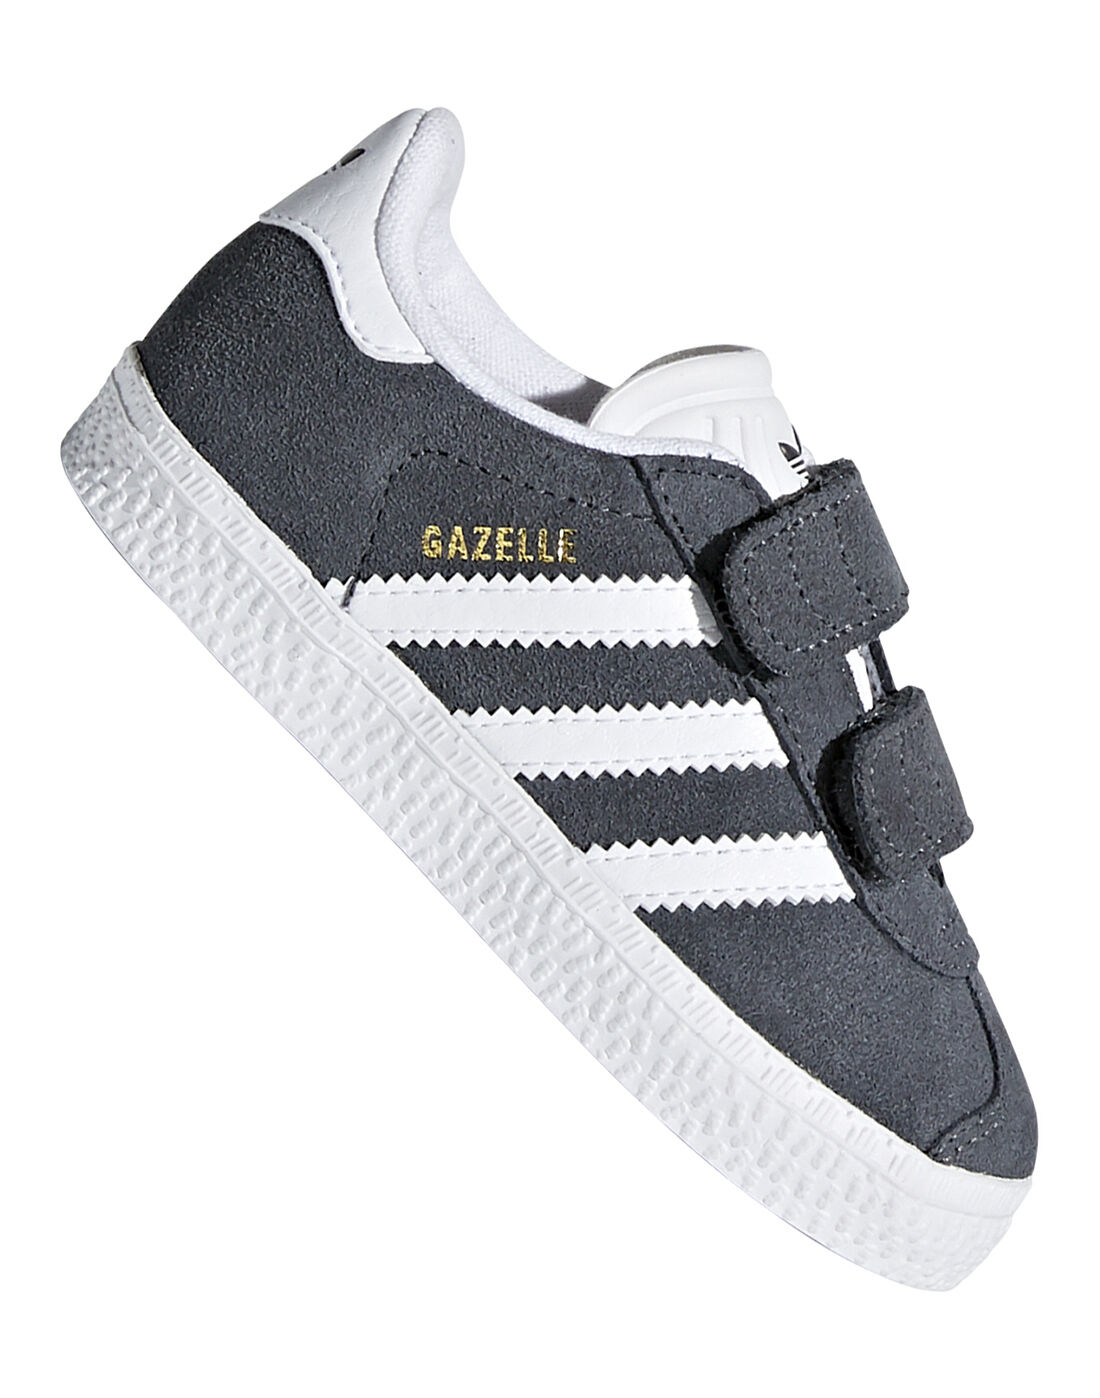 adidas Originals adidas a181 sneakers clearance sale in amazon | Infants Gazelle